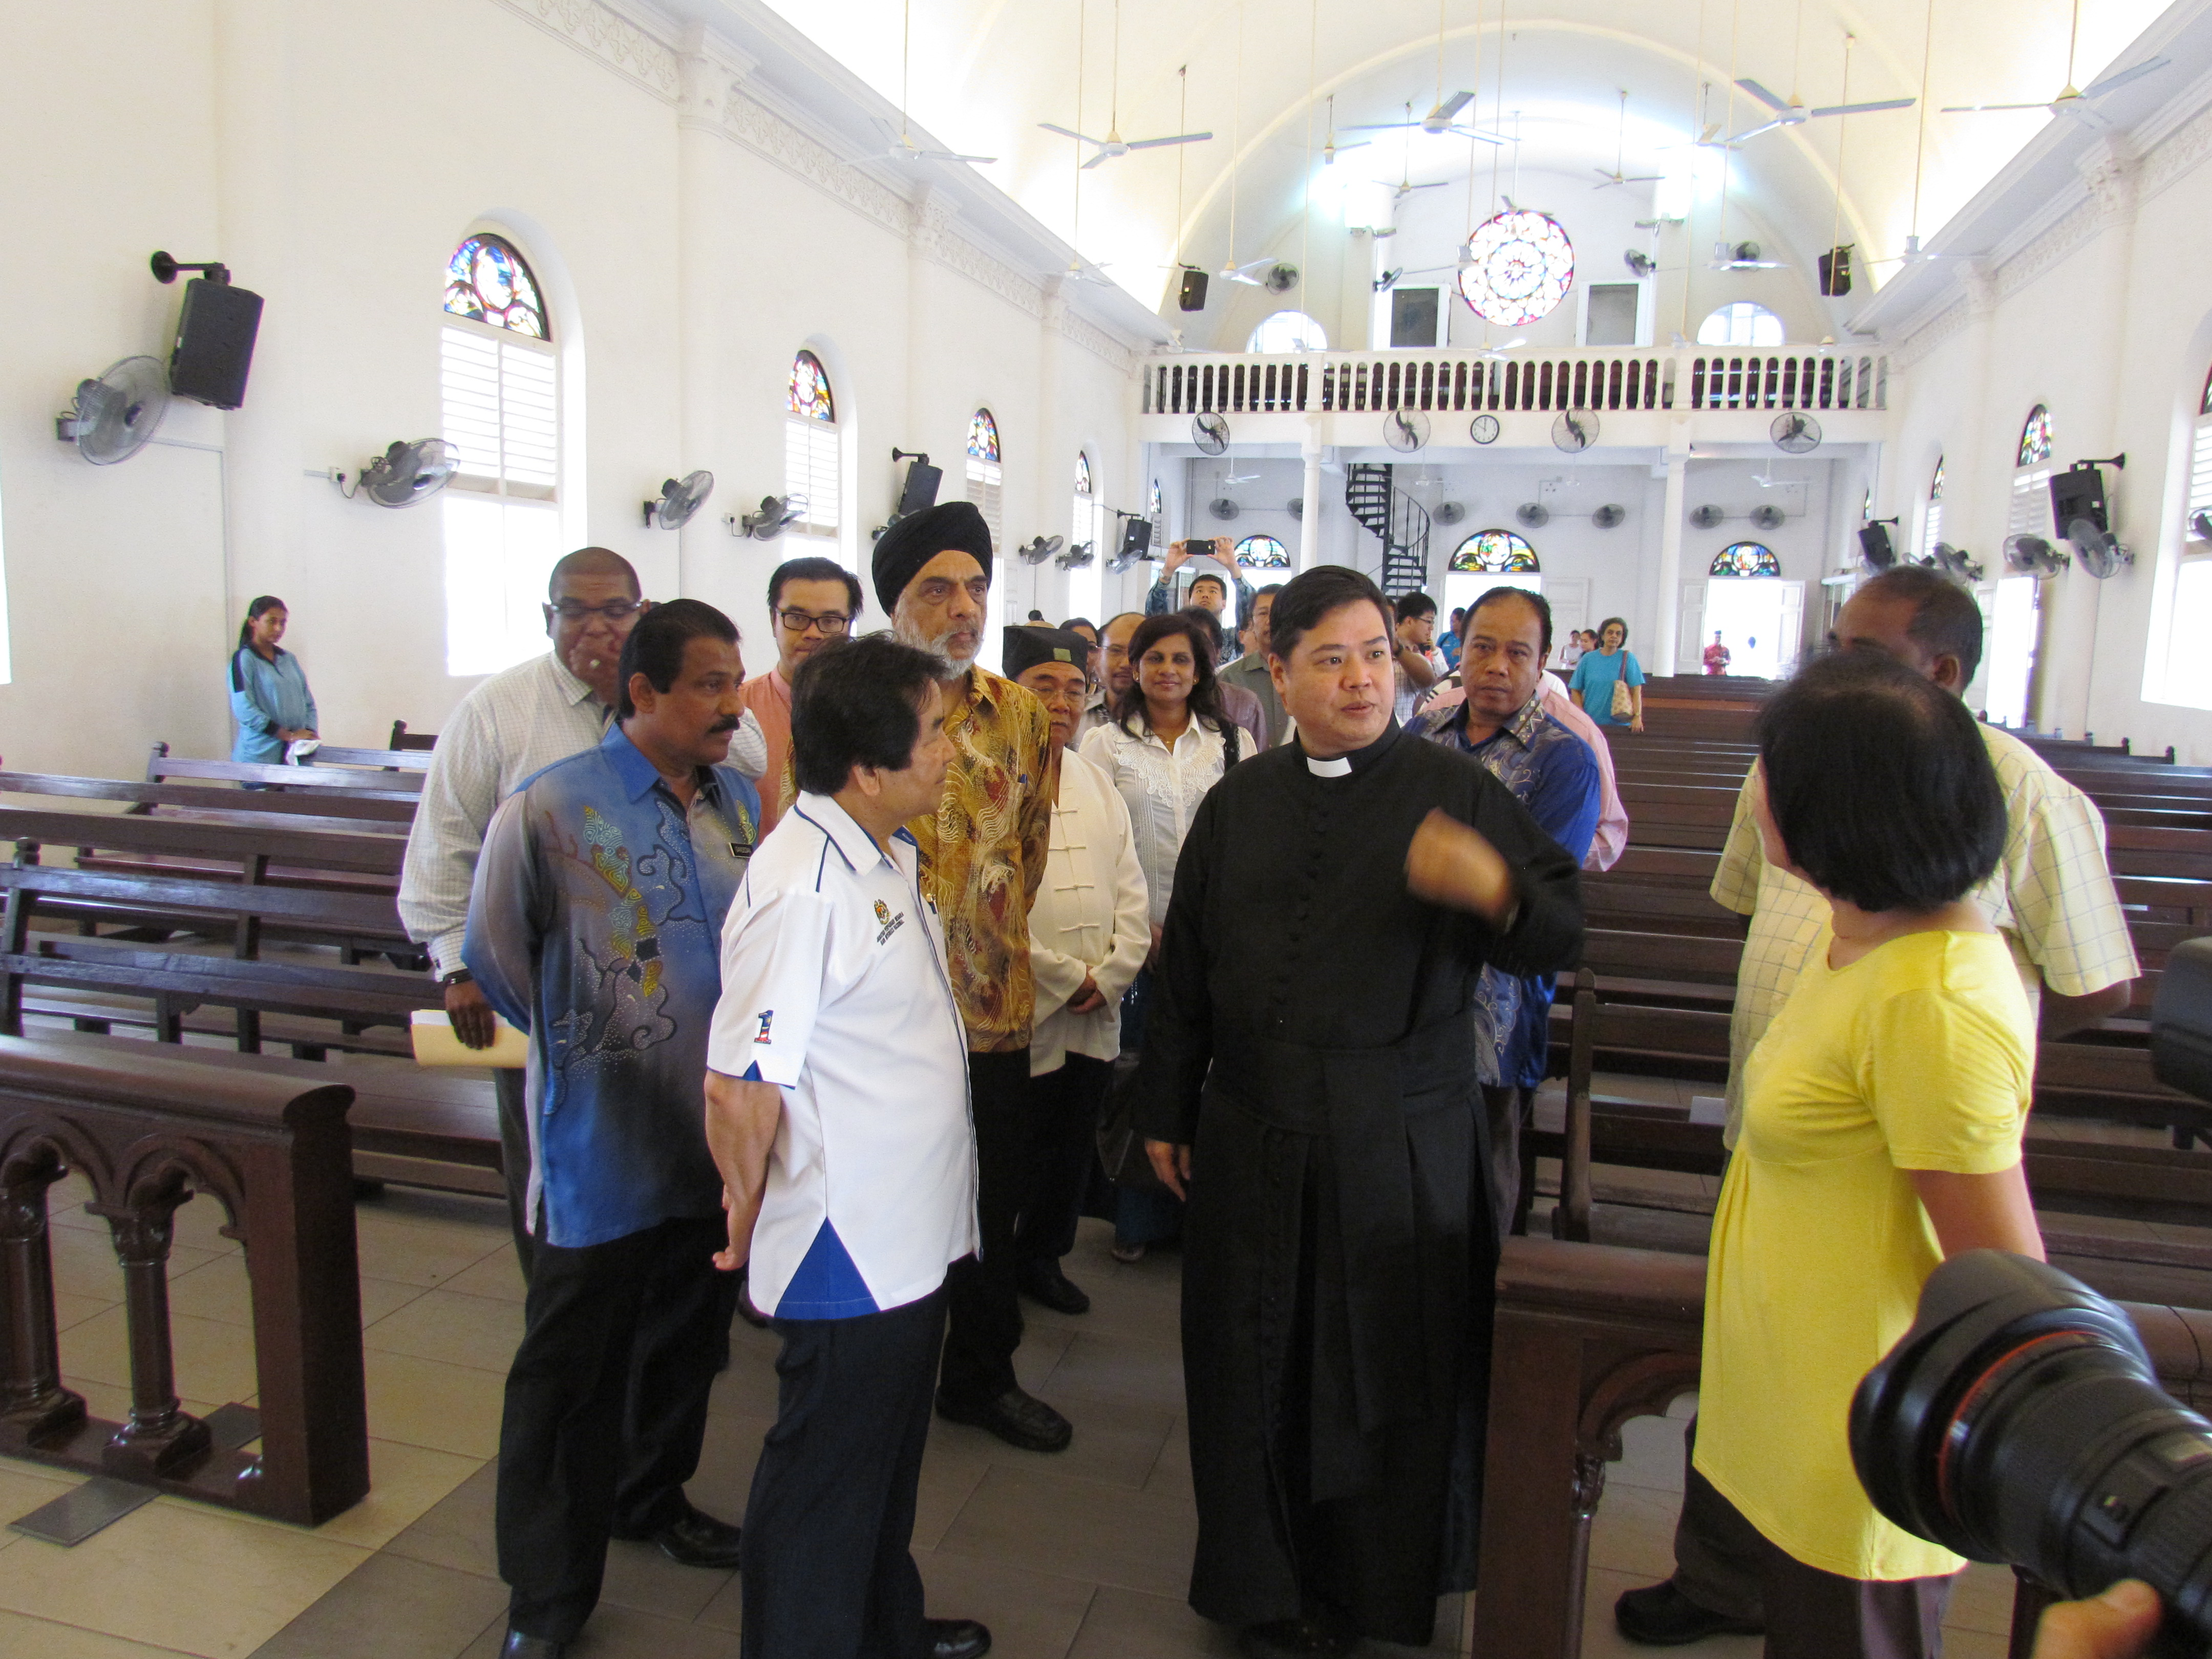 JKMPKA members and Minister Tan Sri Joseph Kurup discussing with Priest in Church for WIHW 2015 in Klang.JPG